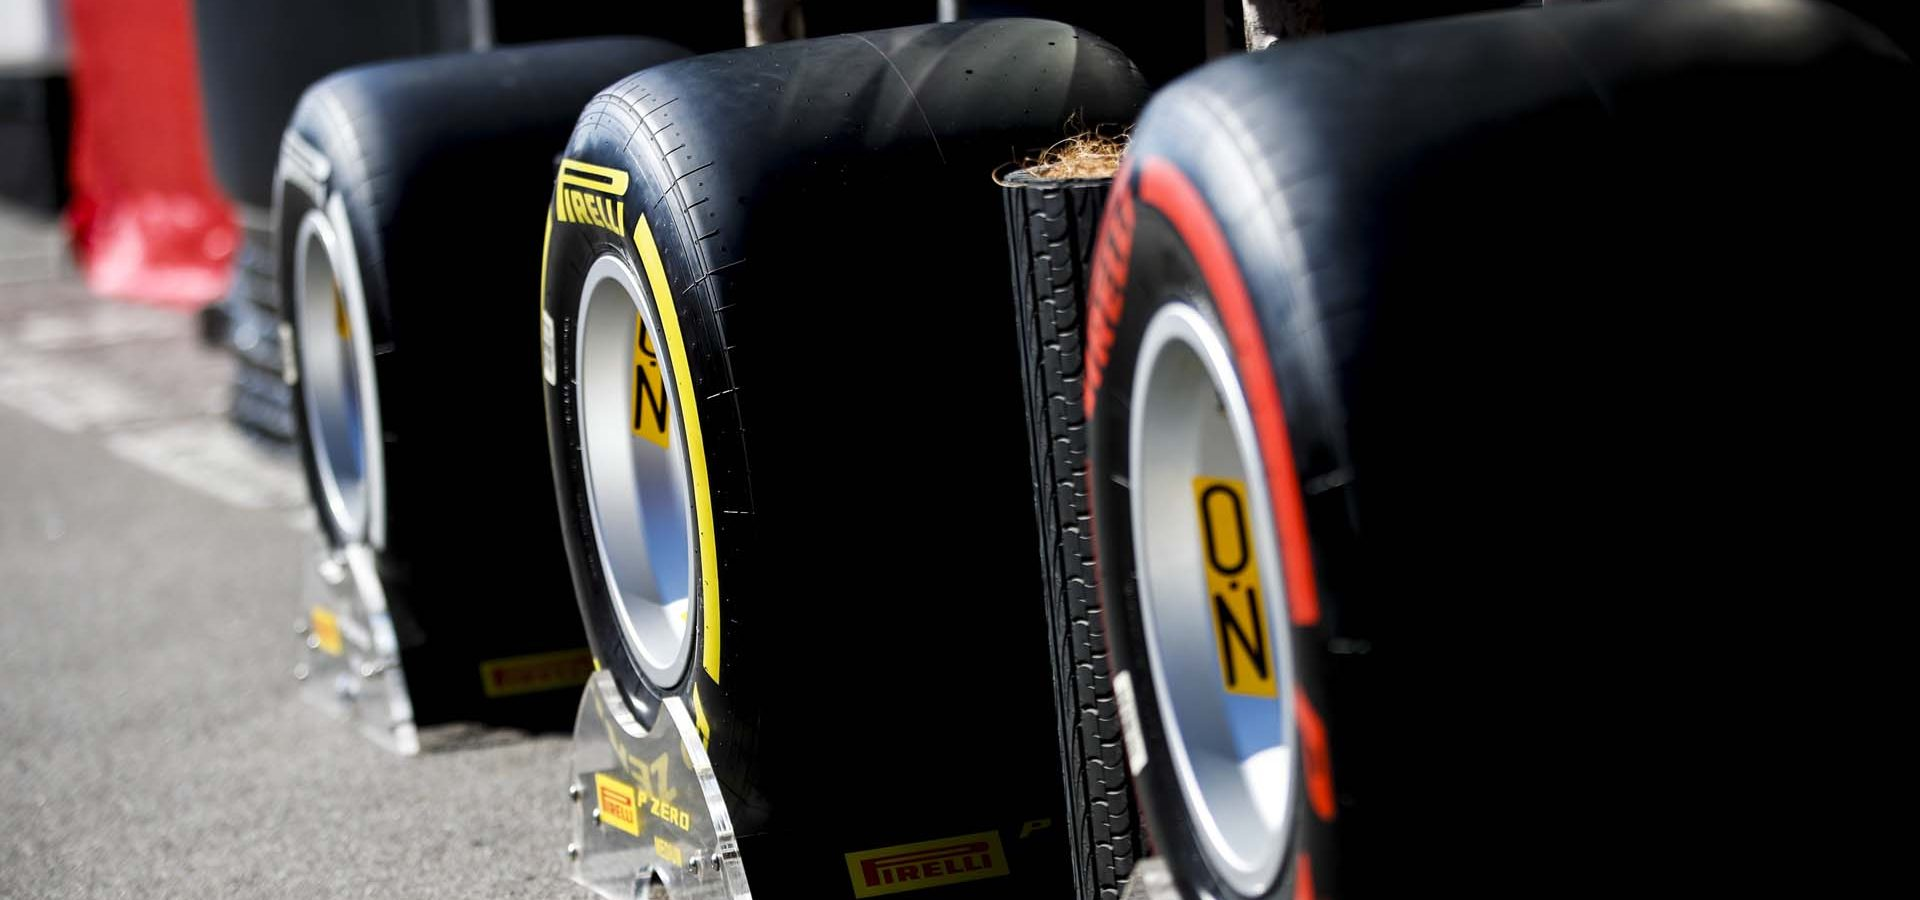 CIRCUIT DE BARCELONA-CATALUNYA, SPAIN - FEBRUARY 21: Tyres outside Pirelli Hospitality during the Barcelona February testing I at Circuit de Barcelona-Catalunya on February 21, 2020 in Circuit de Barcelona-Catalunya, Spain. (Photo by Zak Mauger / LAT Images)